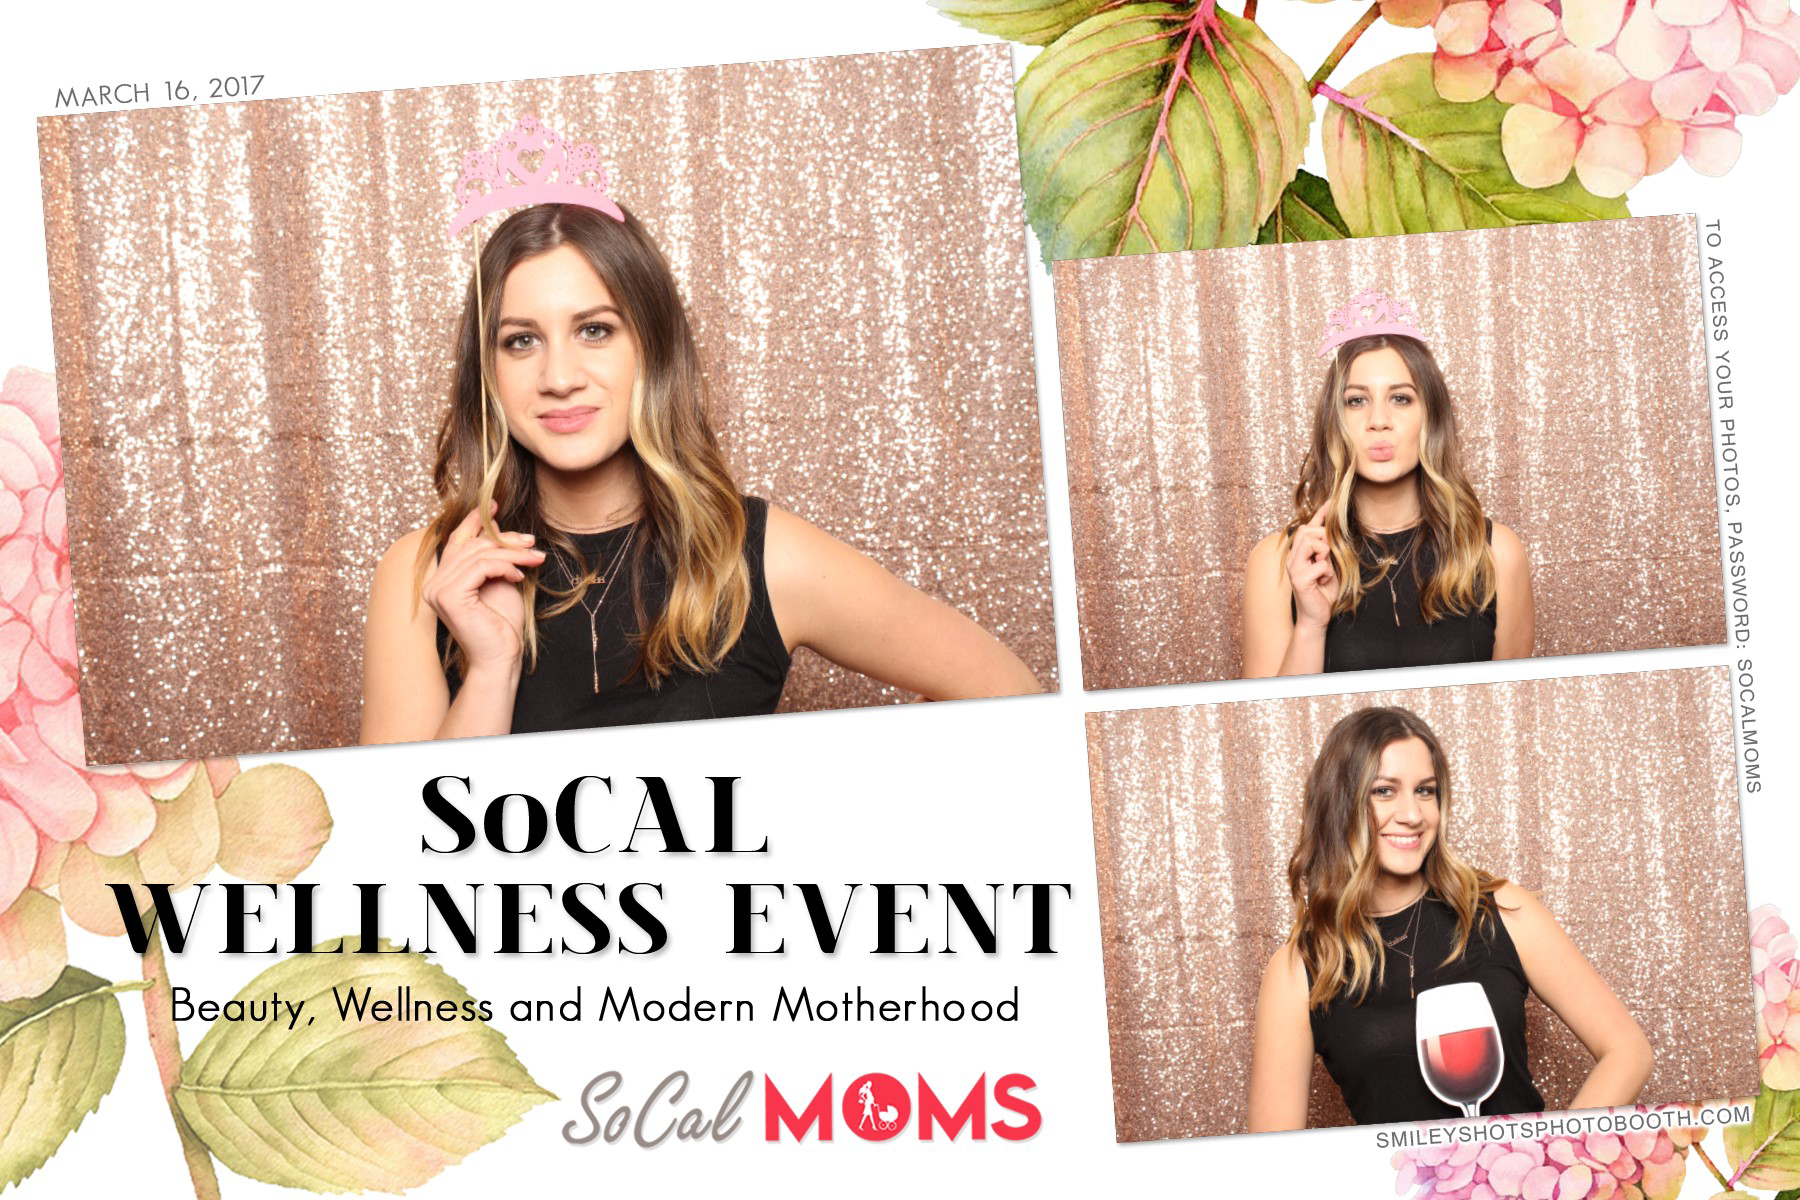 Socal Wellness Event Socal Moms Smiley Shots Photo Booth Photobooth (30).png